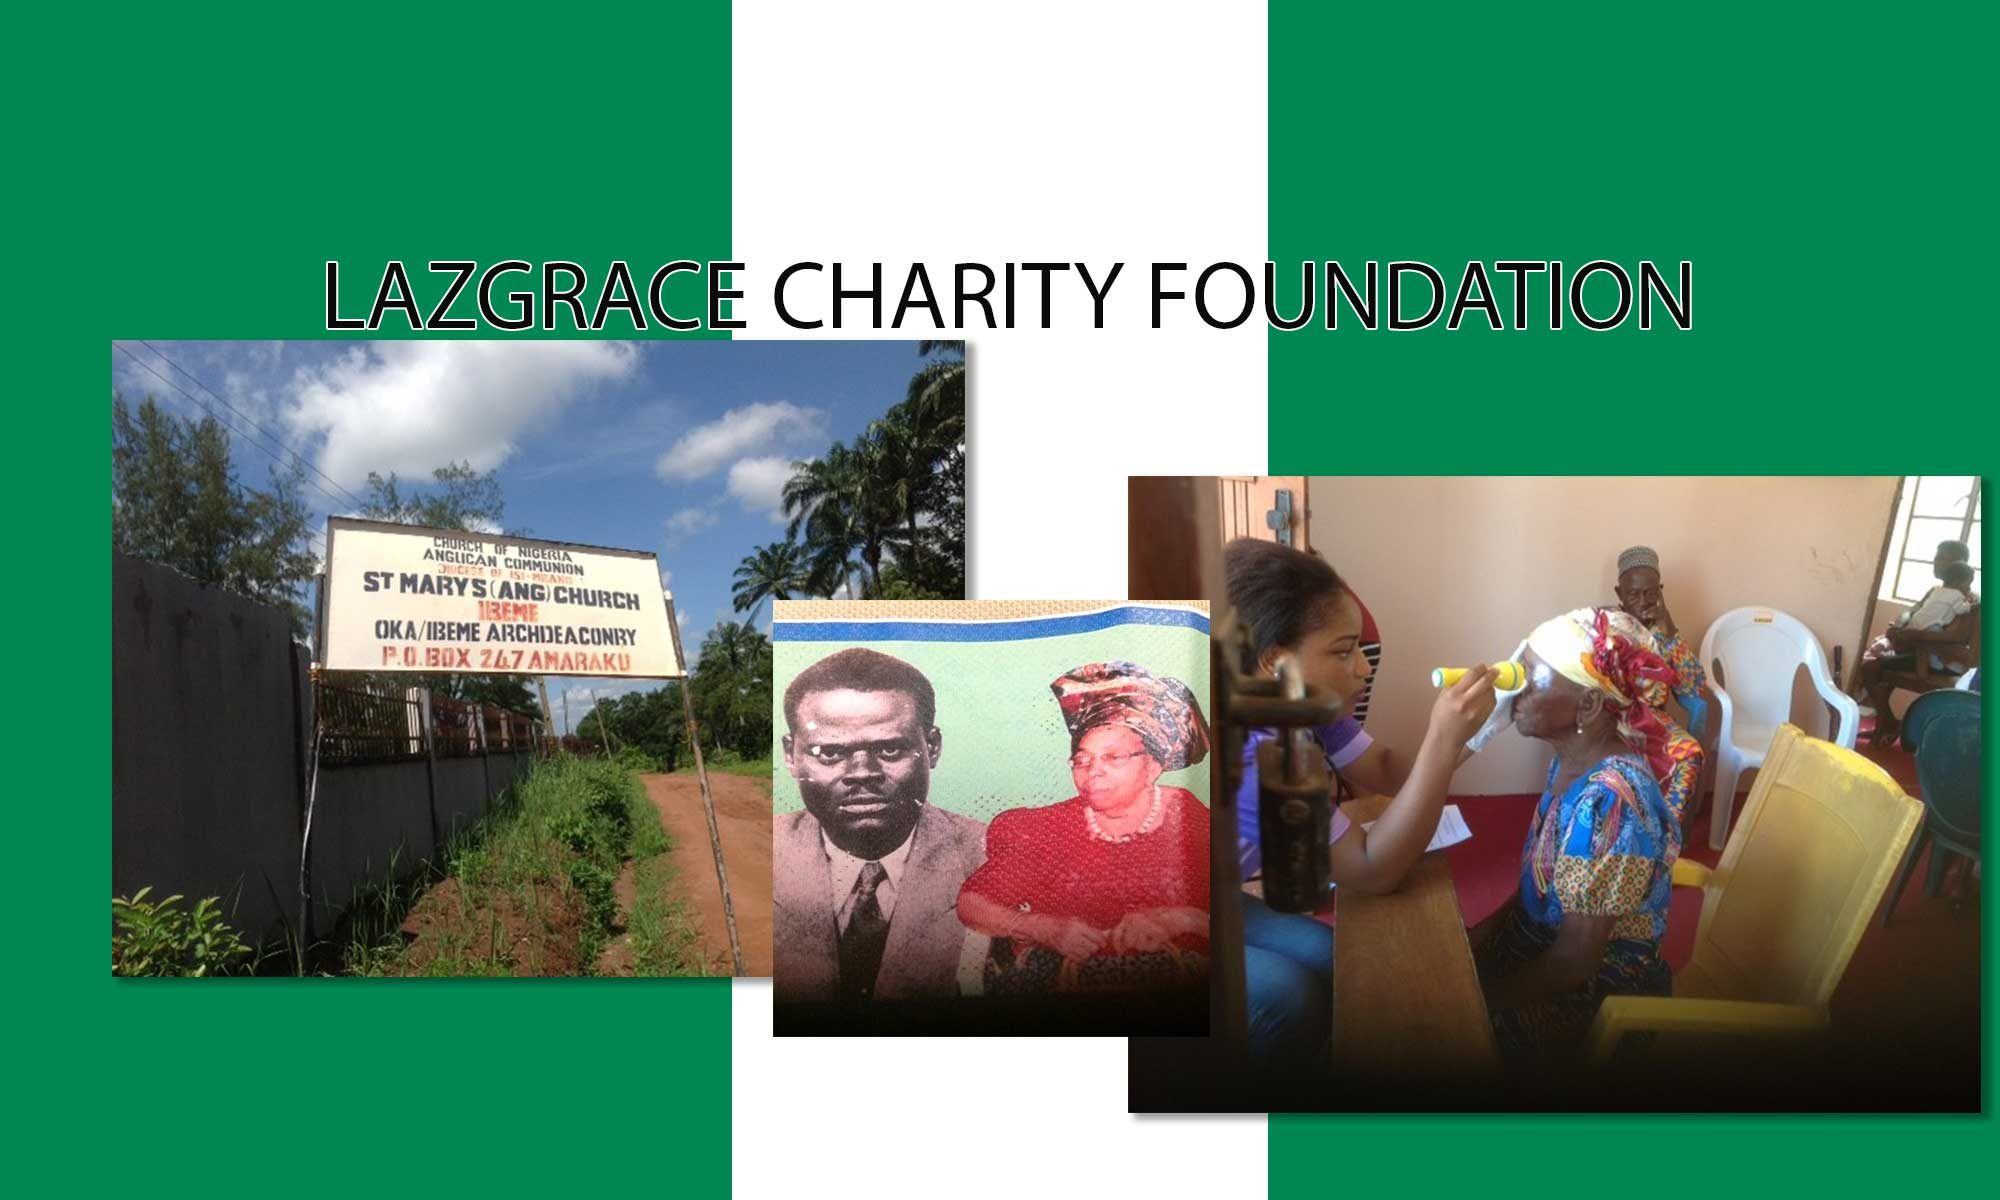 LazGrace Charity Foundation